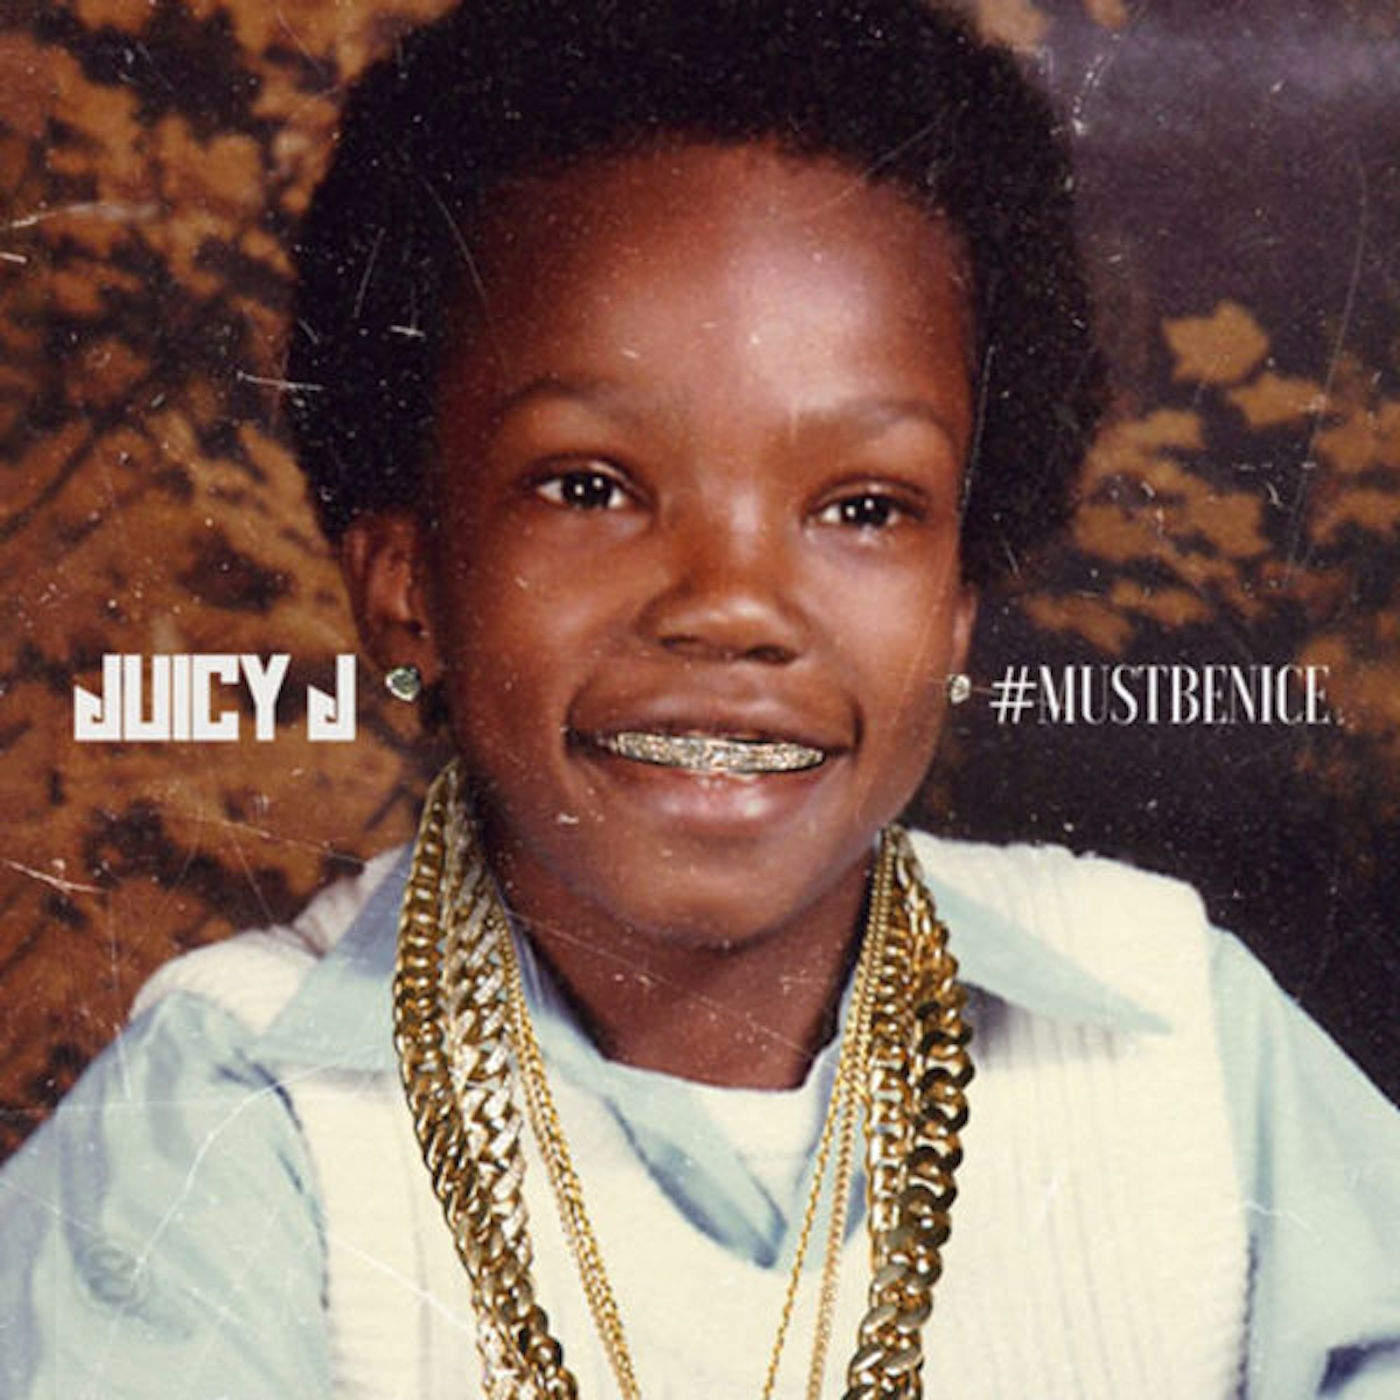 Juicy J - Mustbenice Cover